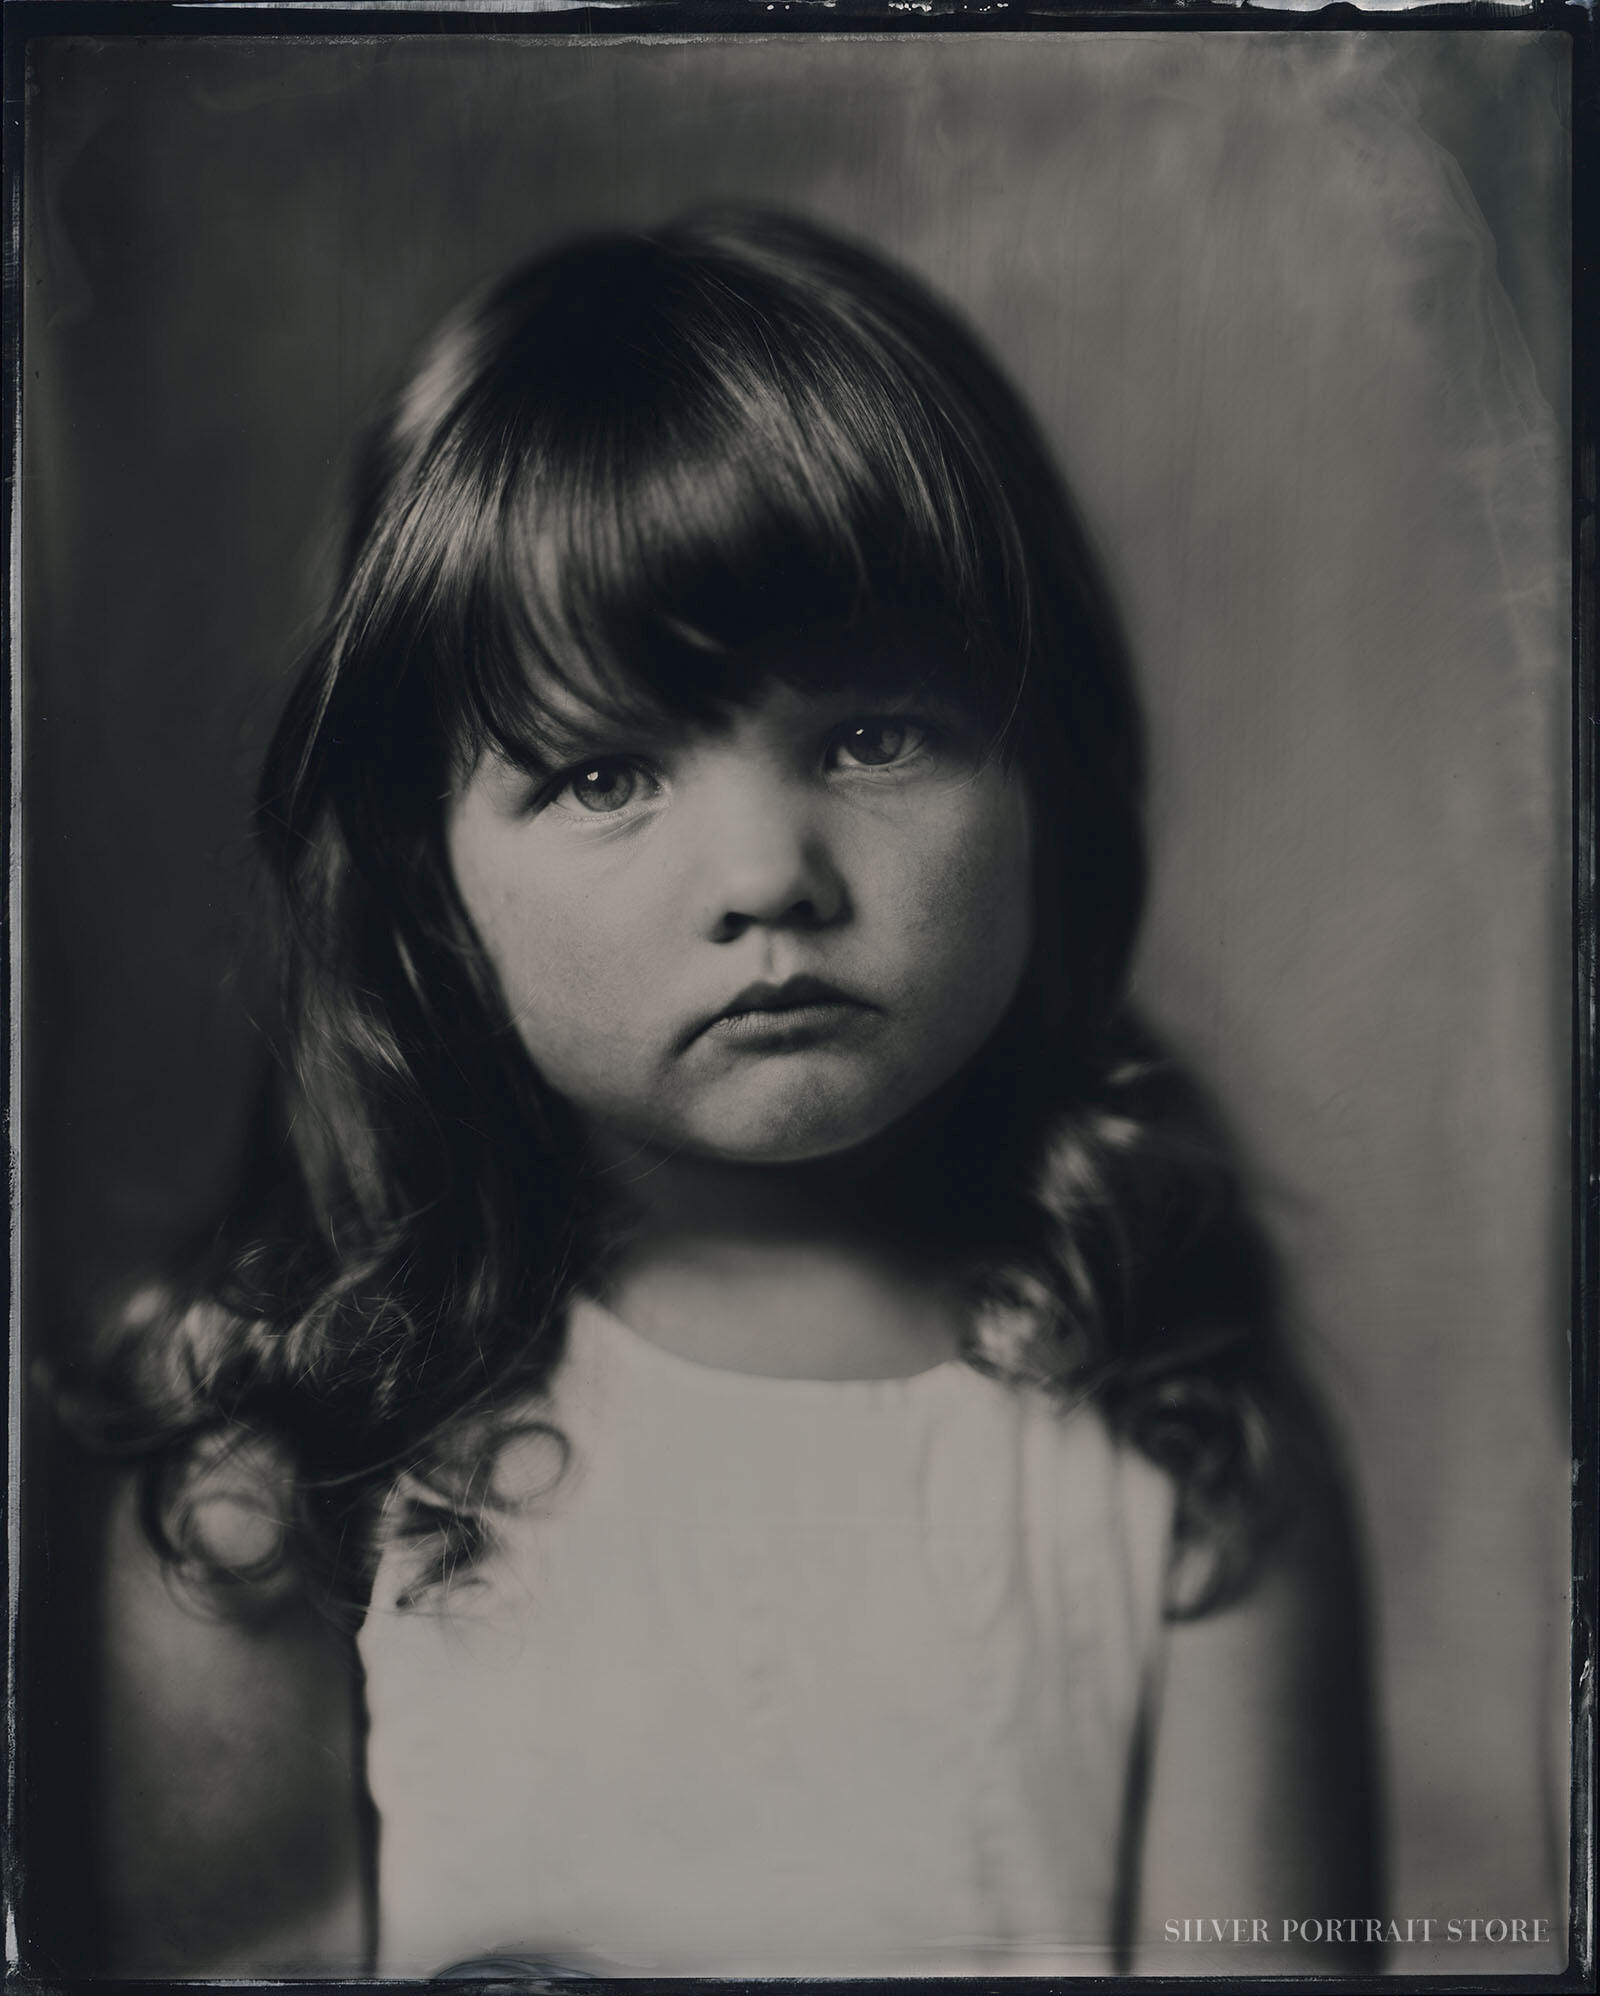 Bobbi-Silver Portrait Store-Scan from Wet plate collodion-Tintype 20 x 25 cm